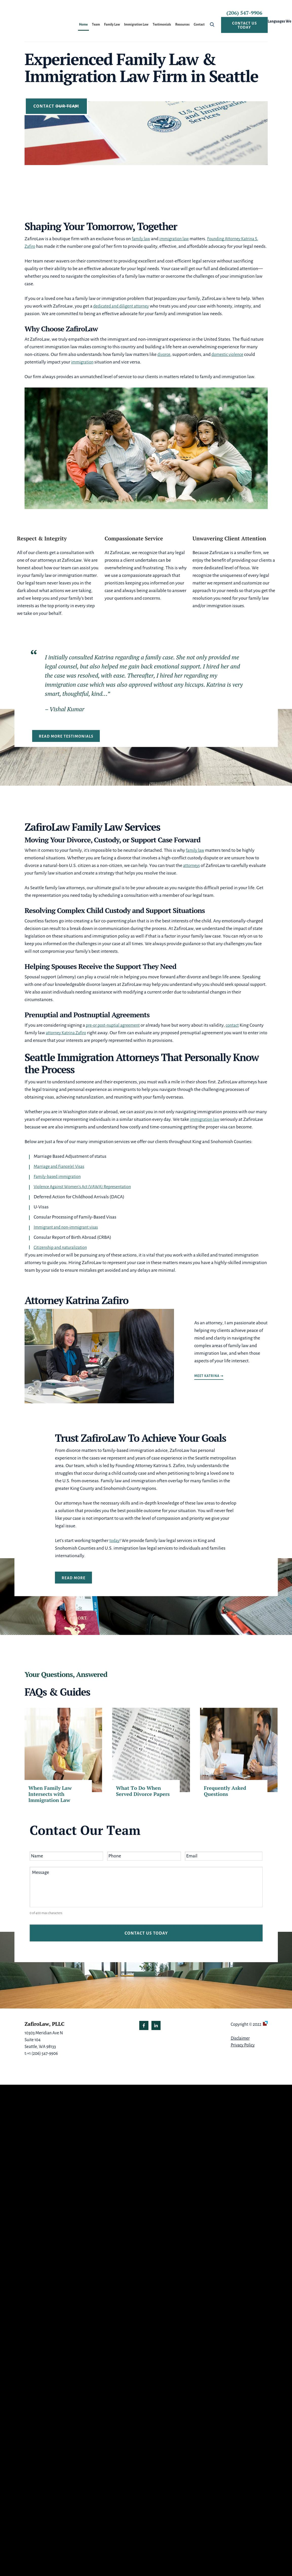 Katrina S. Zafiro, Attorney at Law - Seattle WA Lawyers